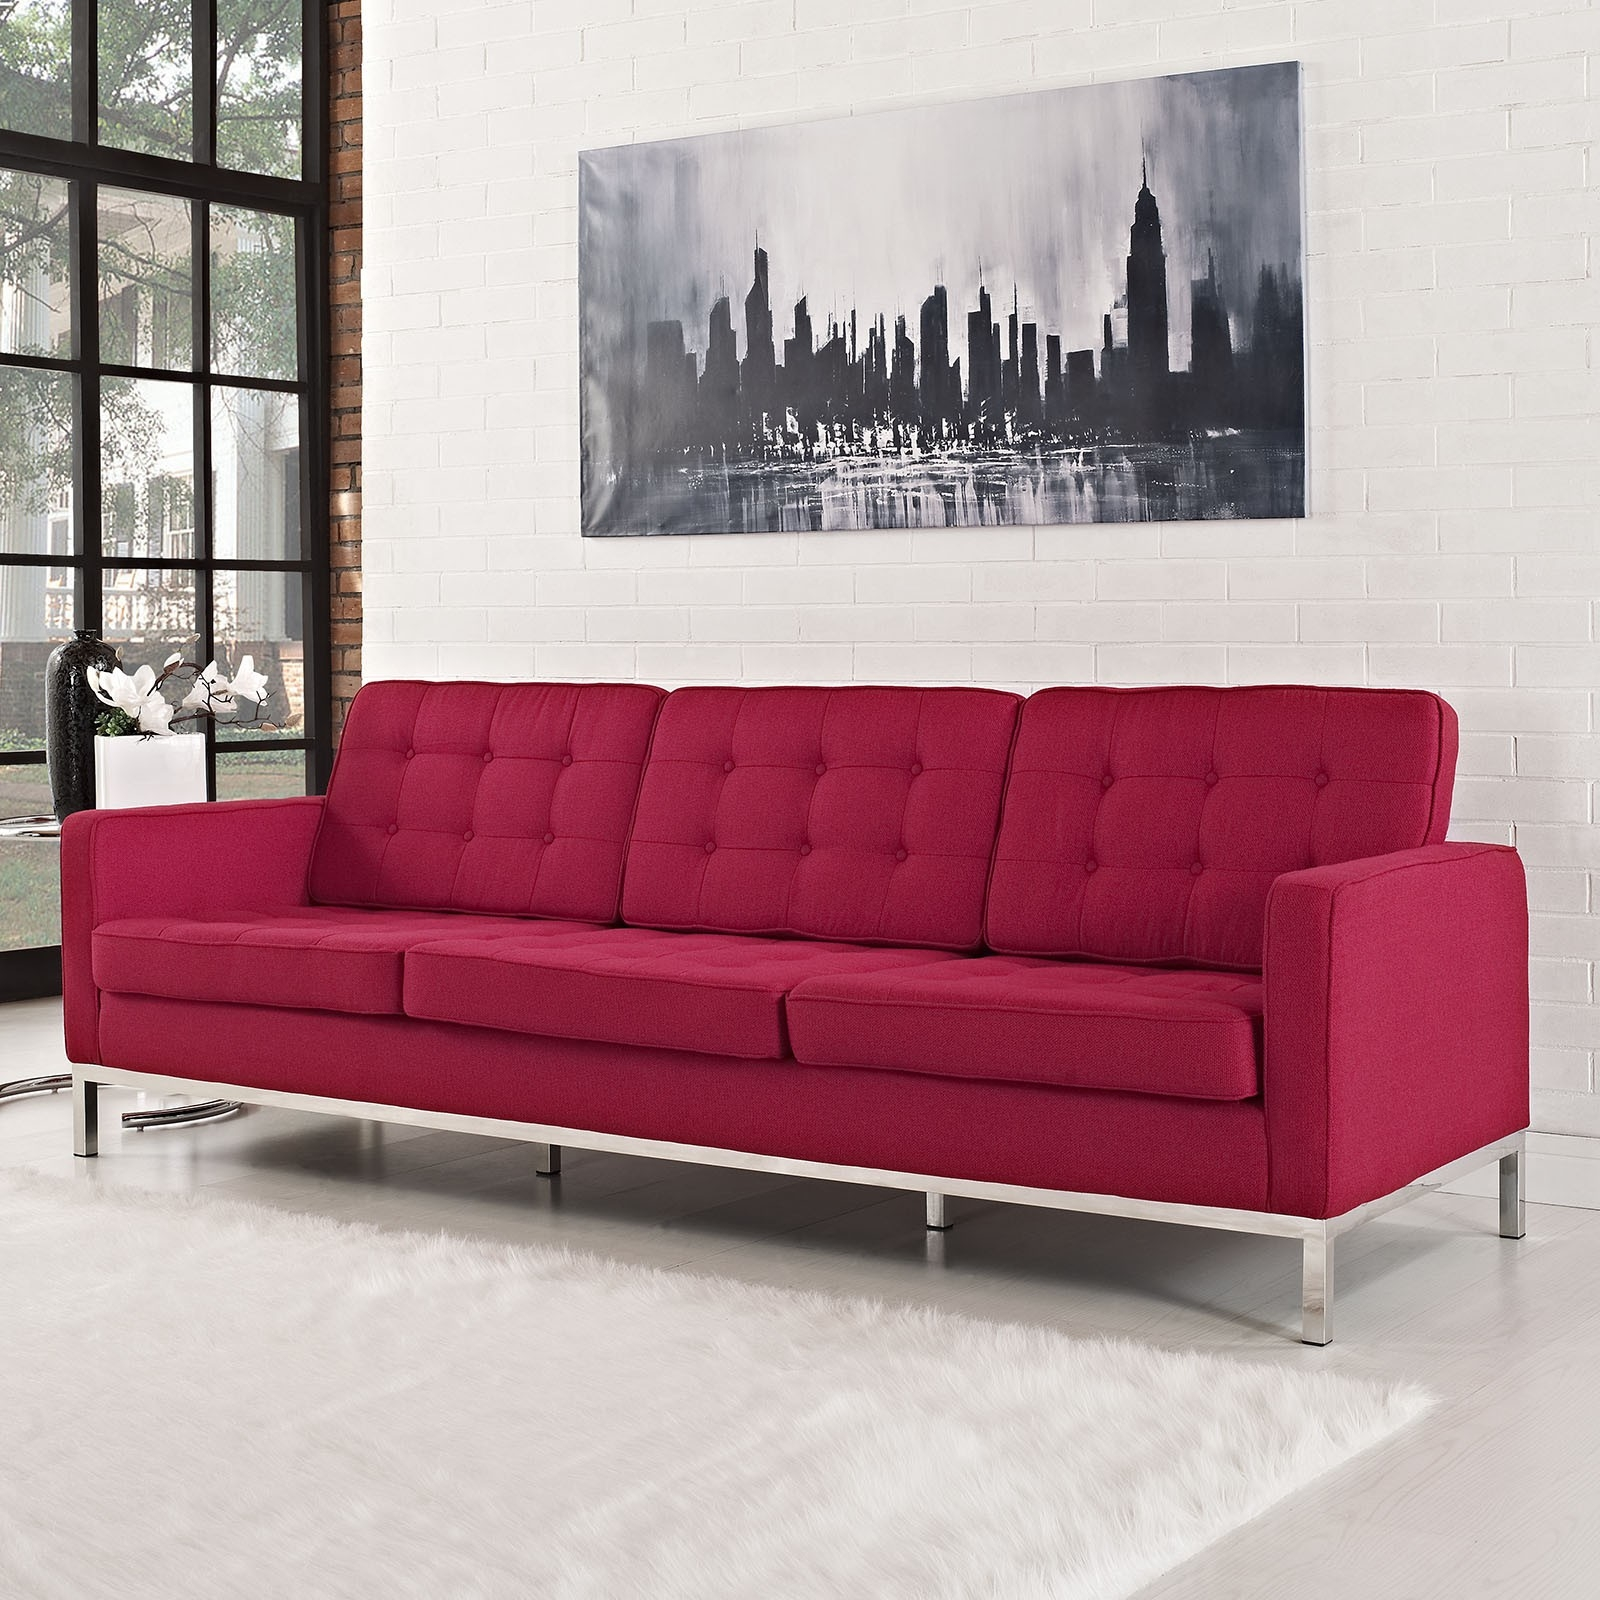 Knoll Florence 2 Seats Sofa In The Shop River Academy In Florence Knoll Fabric Sofas (Image 10 of 15)